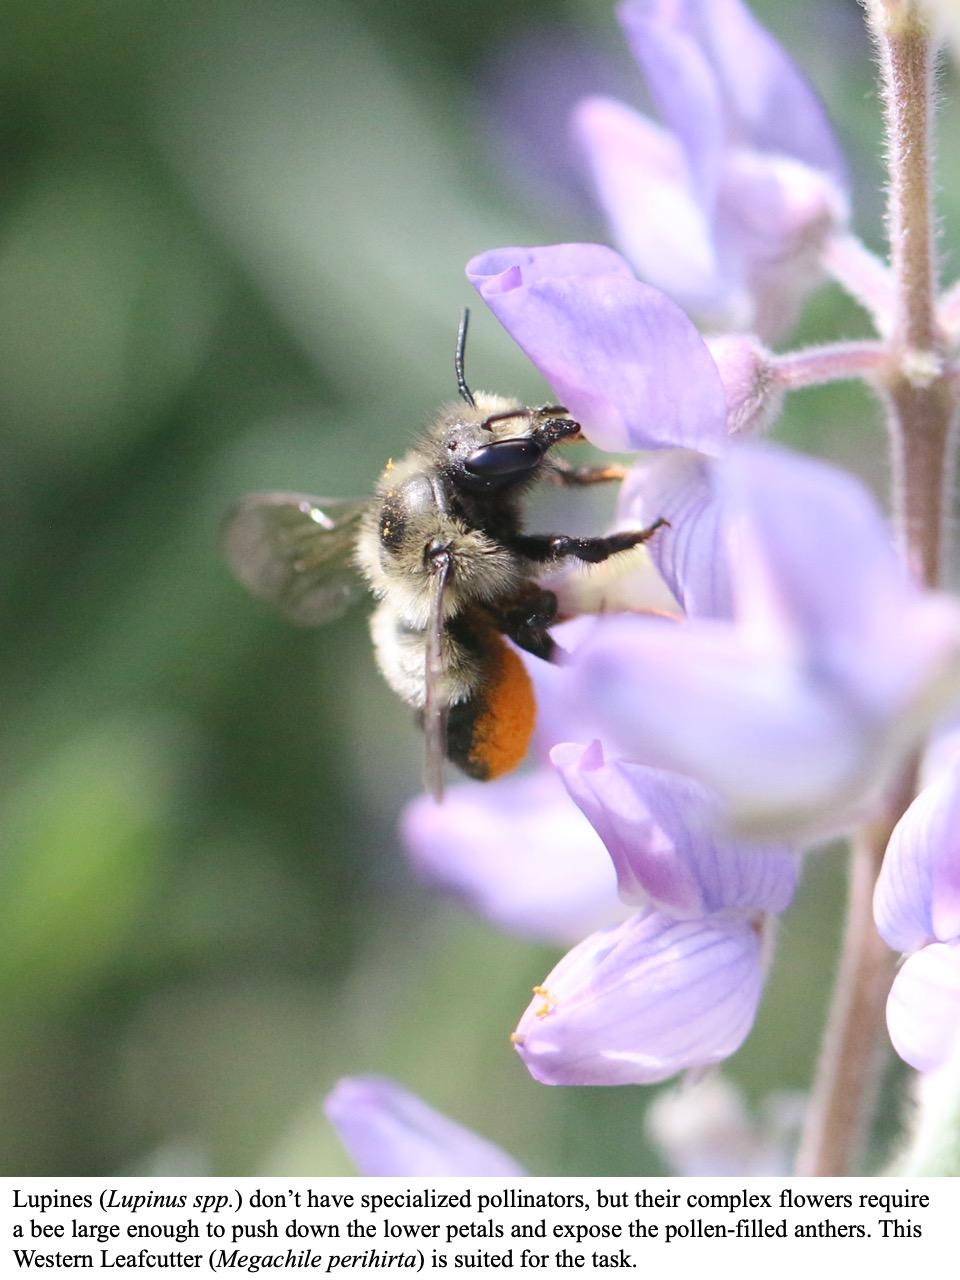 Lupines (Lupinus spp.) don't have specialized pollinators, but their complex flowers require a bee large enough to push down the lower petals